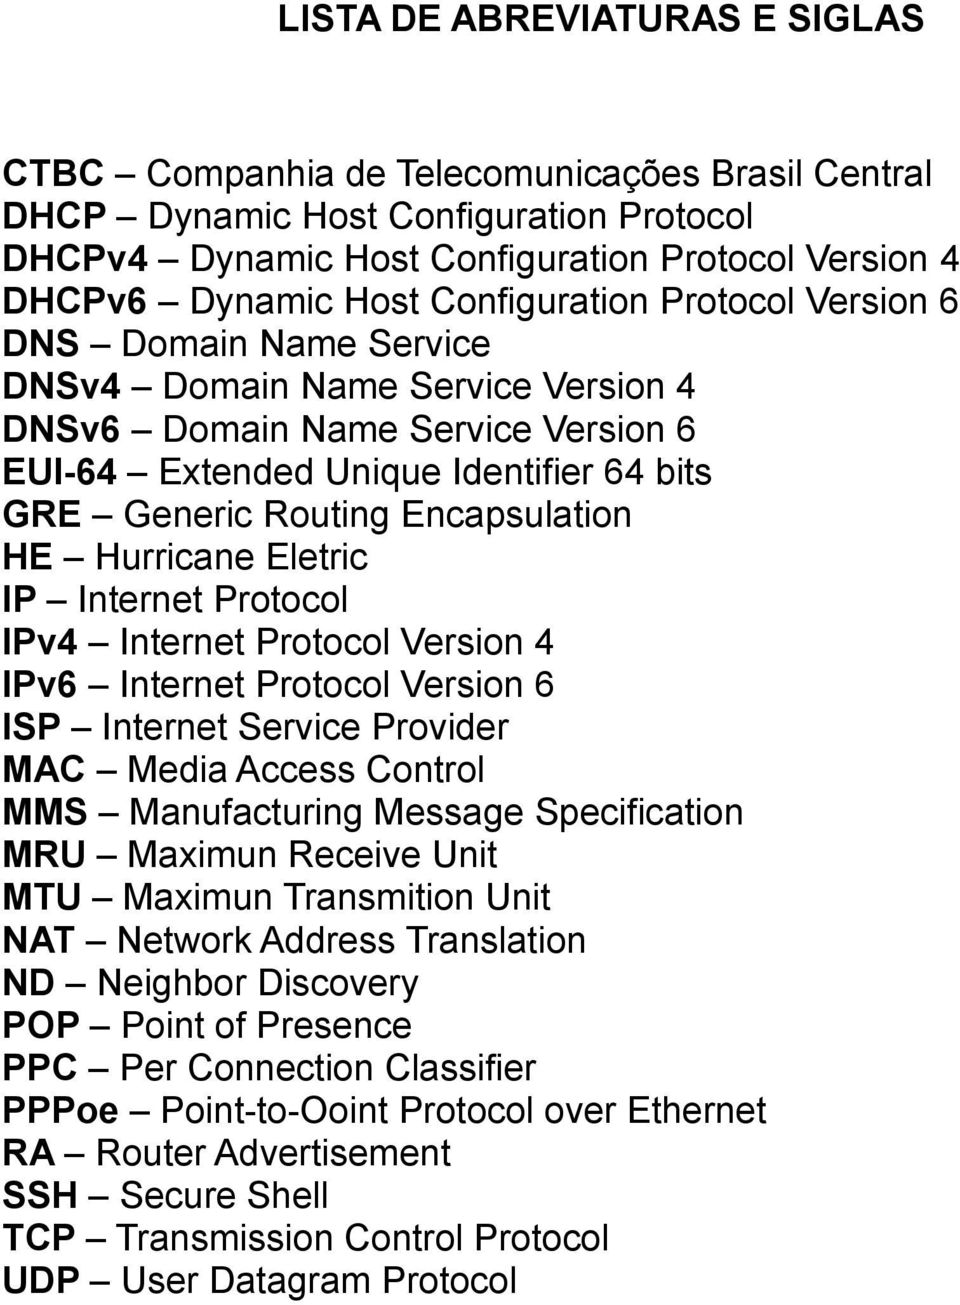 Encapsulation HE Hurricane Eletric IP Internet Protocol IPv4 Internet Protocol Version 4 IPv6 Internet Protocol Version 6 ISP Internet Service Provider MAC Media Access Control MMS Manufacturing